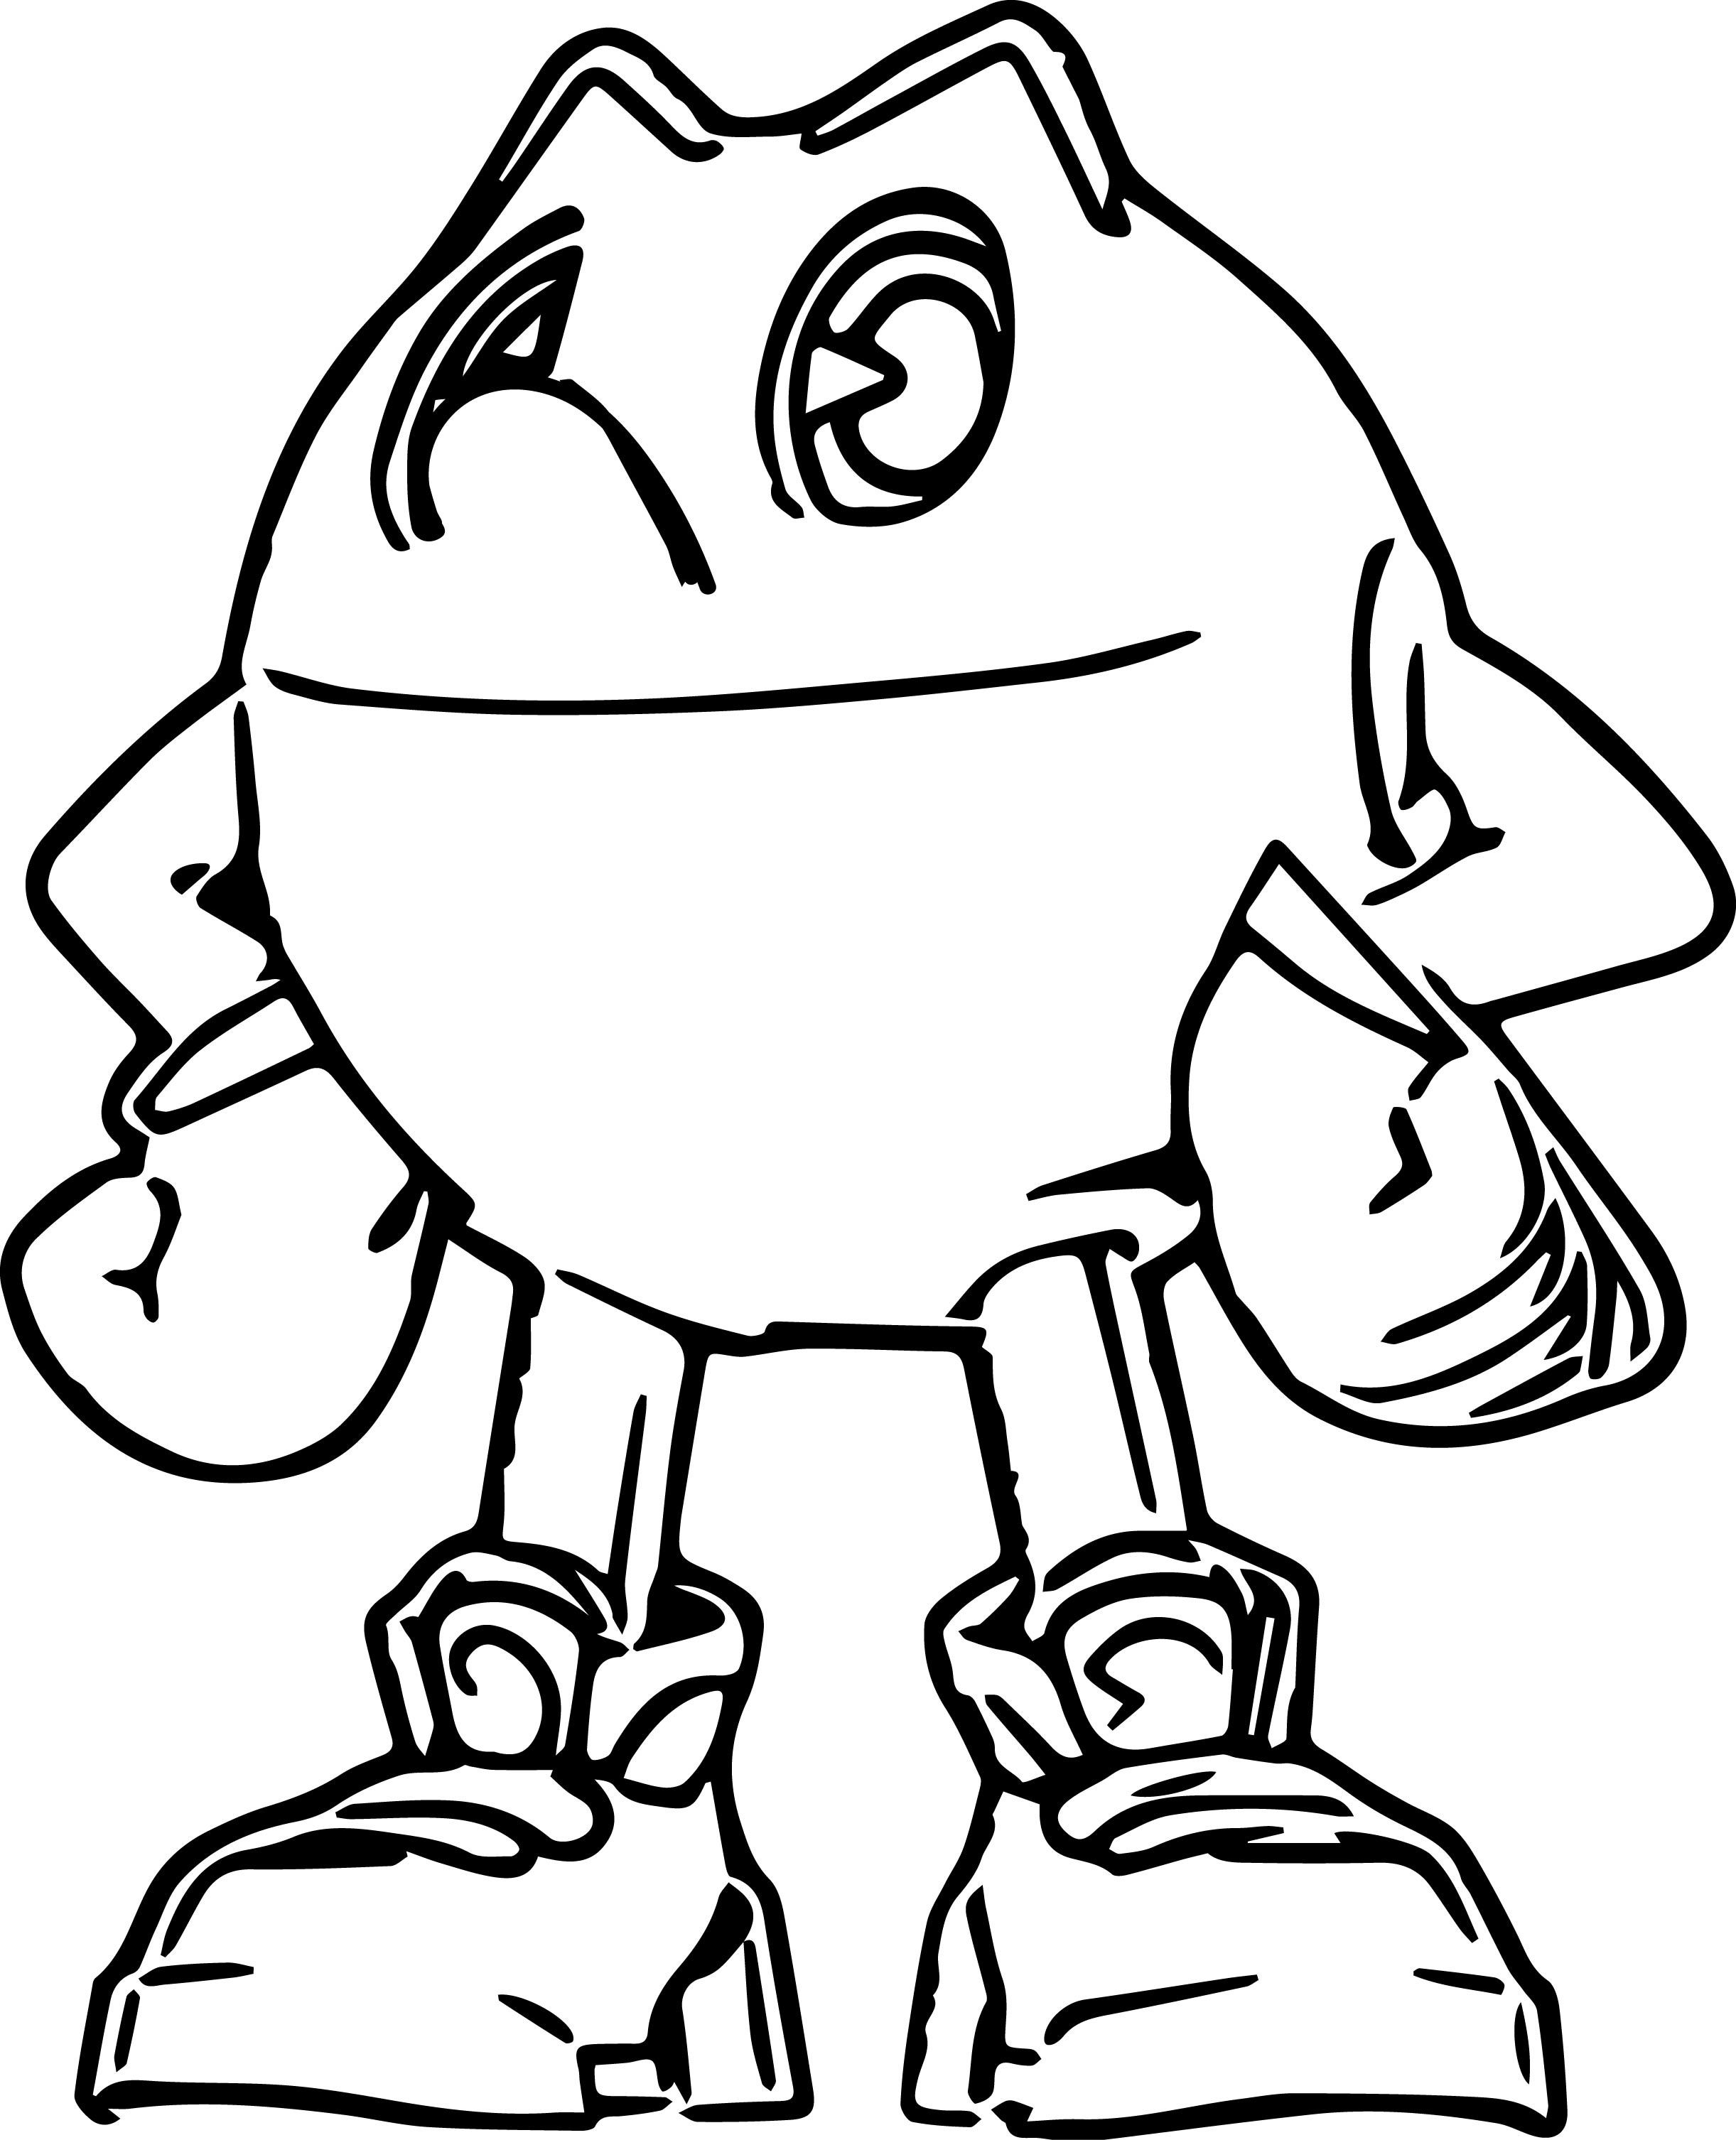 Adult Beauty Pacman Coloring Page Images cute free pacman for kids az coloring pages pac man printable gallery images